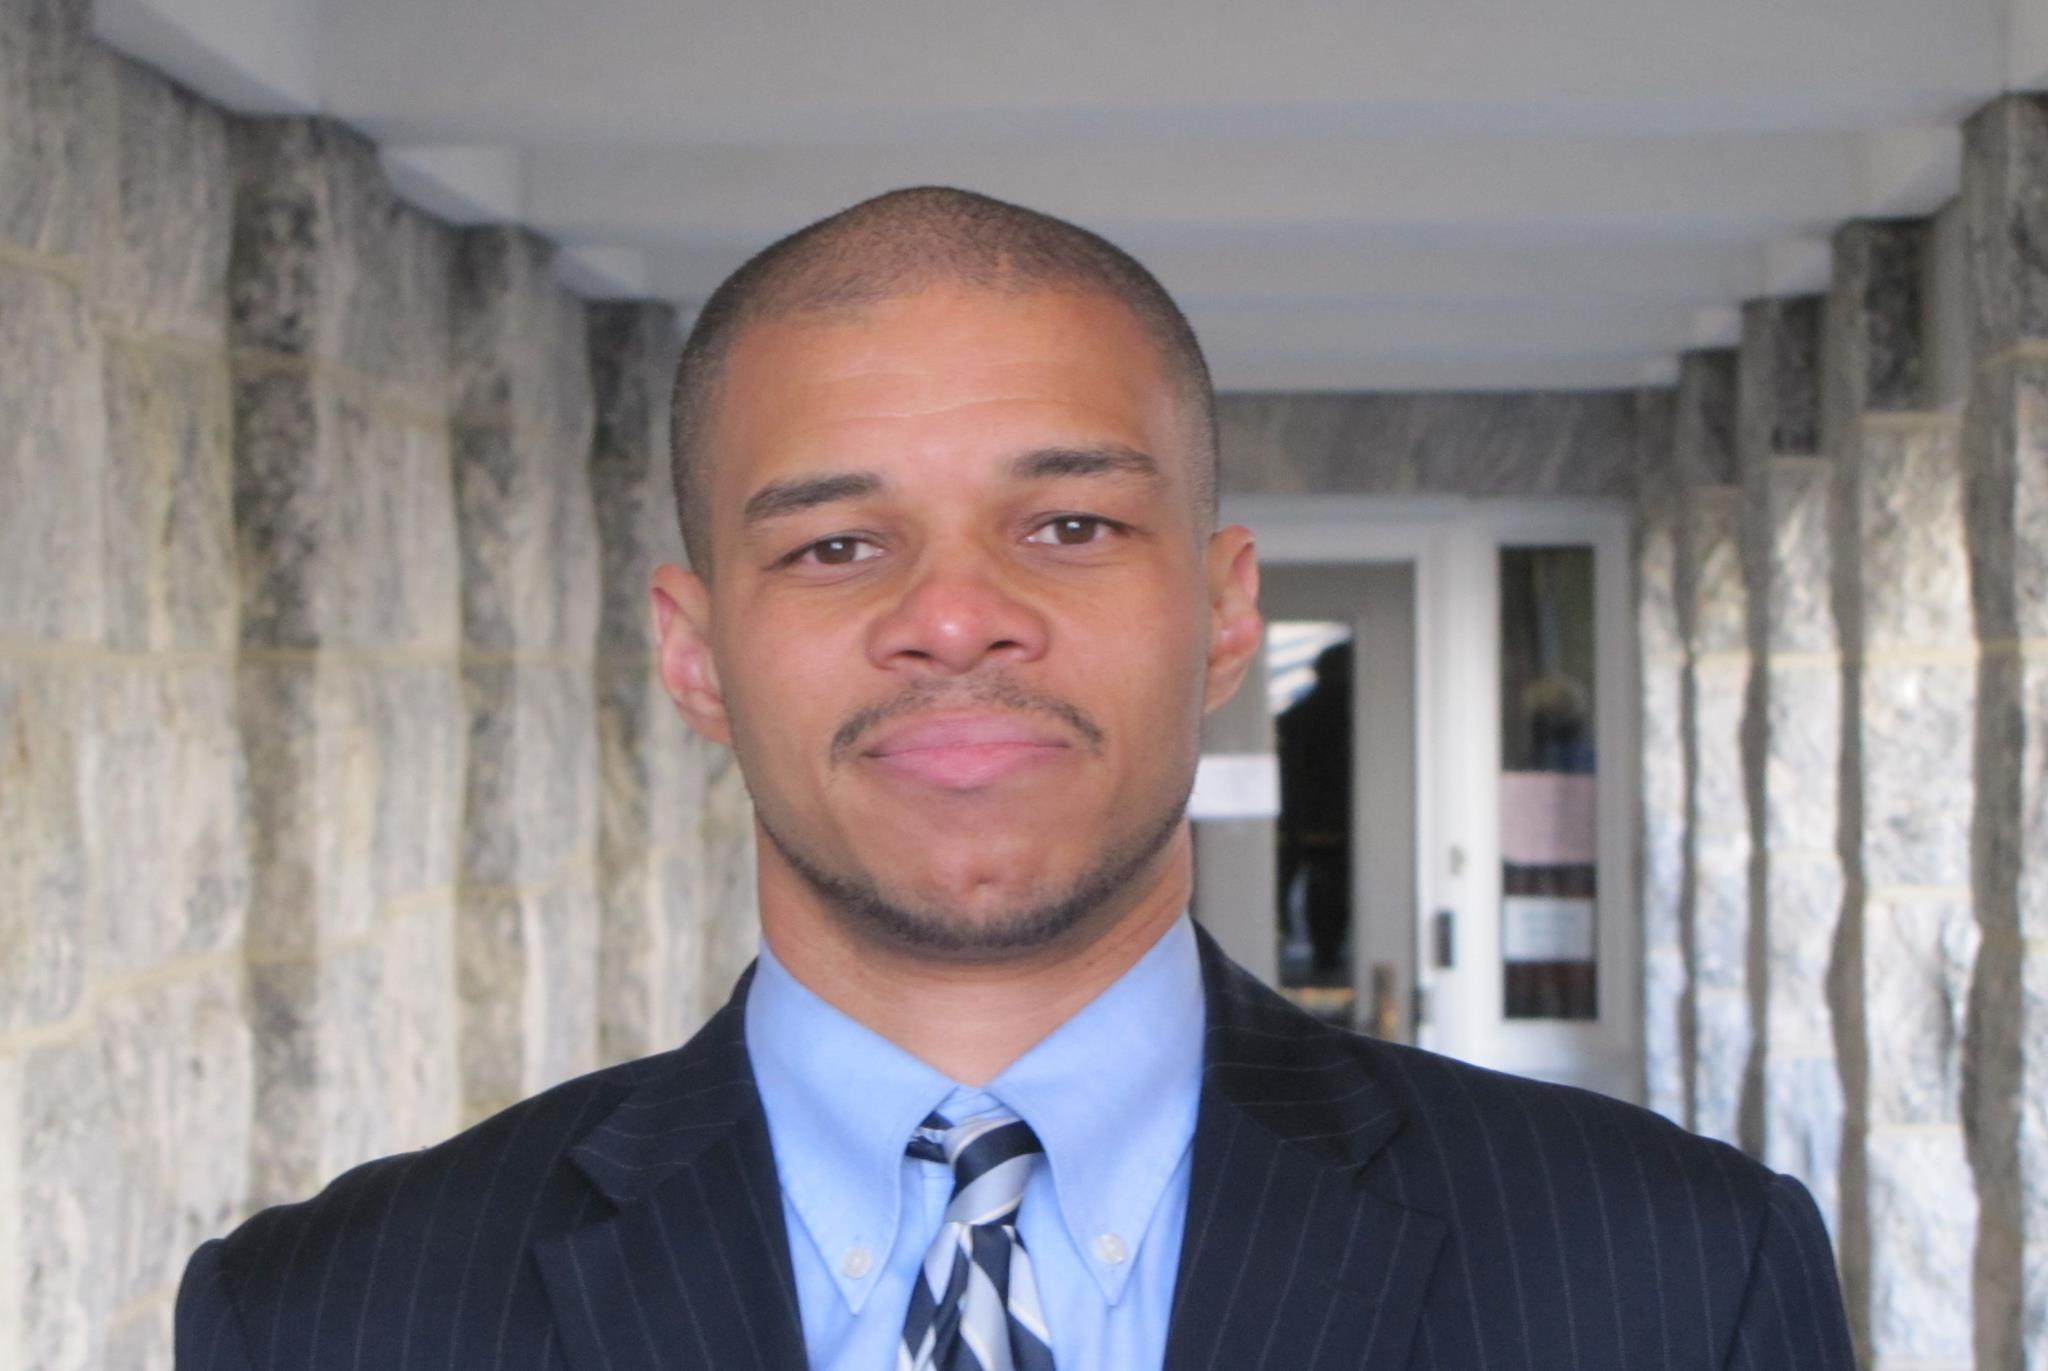 Democrat Richard Gibson, 37, of Ellicott City, has filed to run for State's Attorney in Howard County.